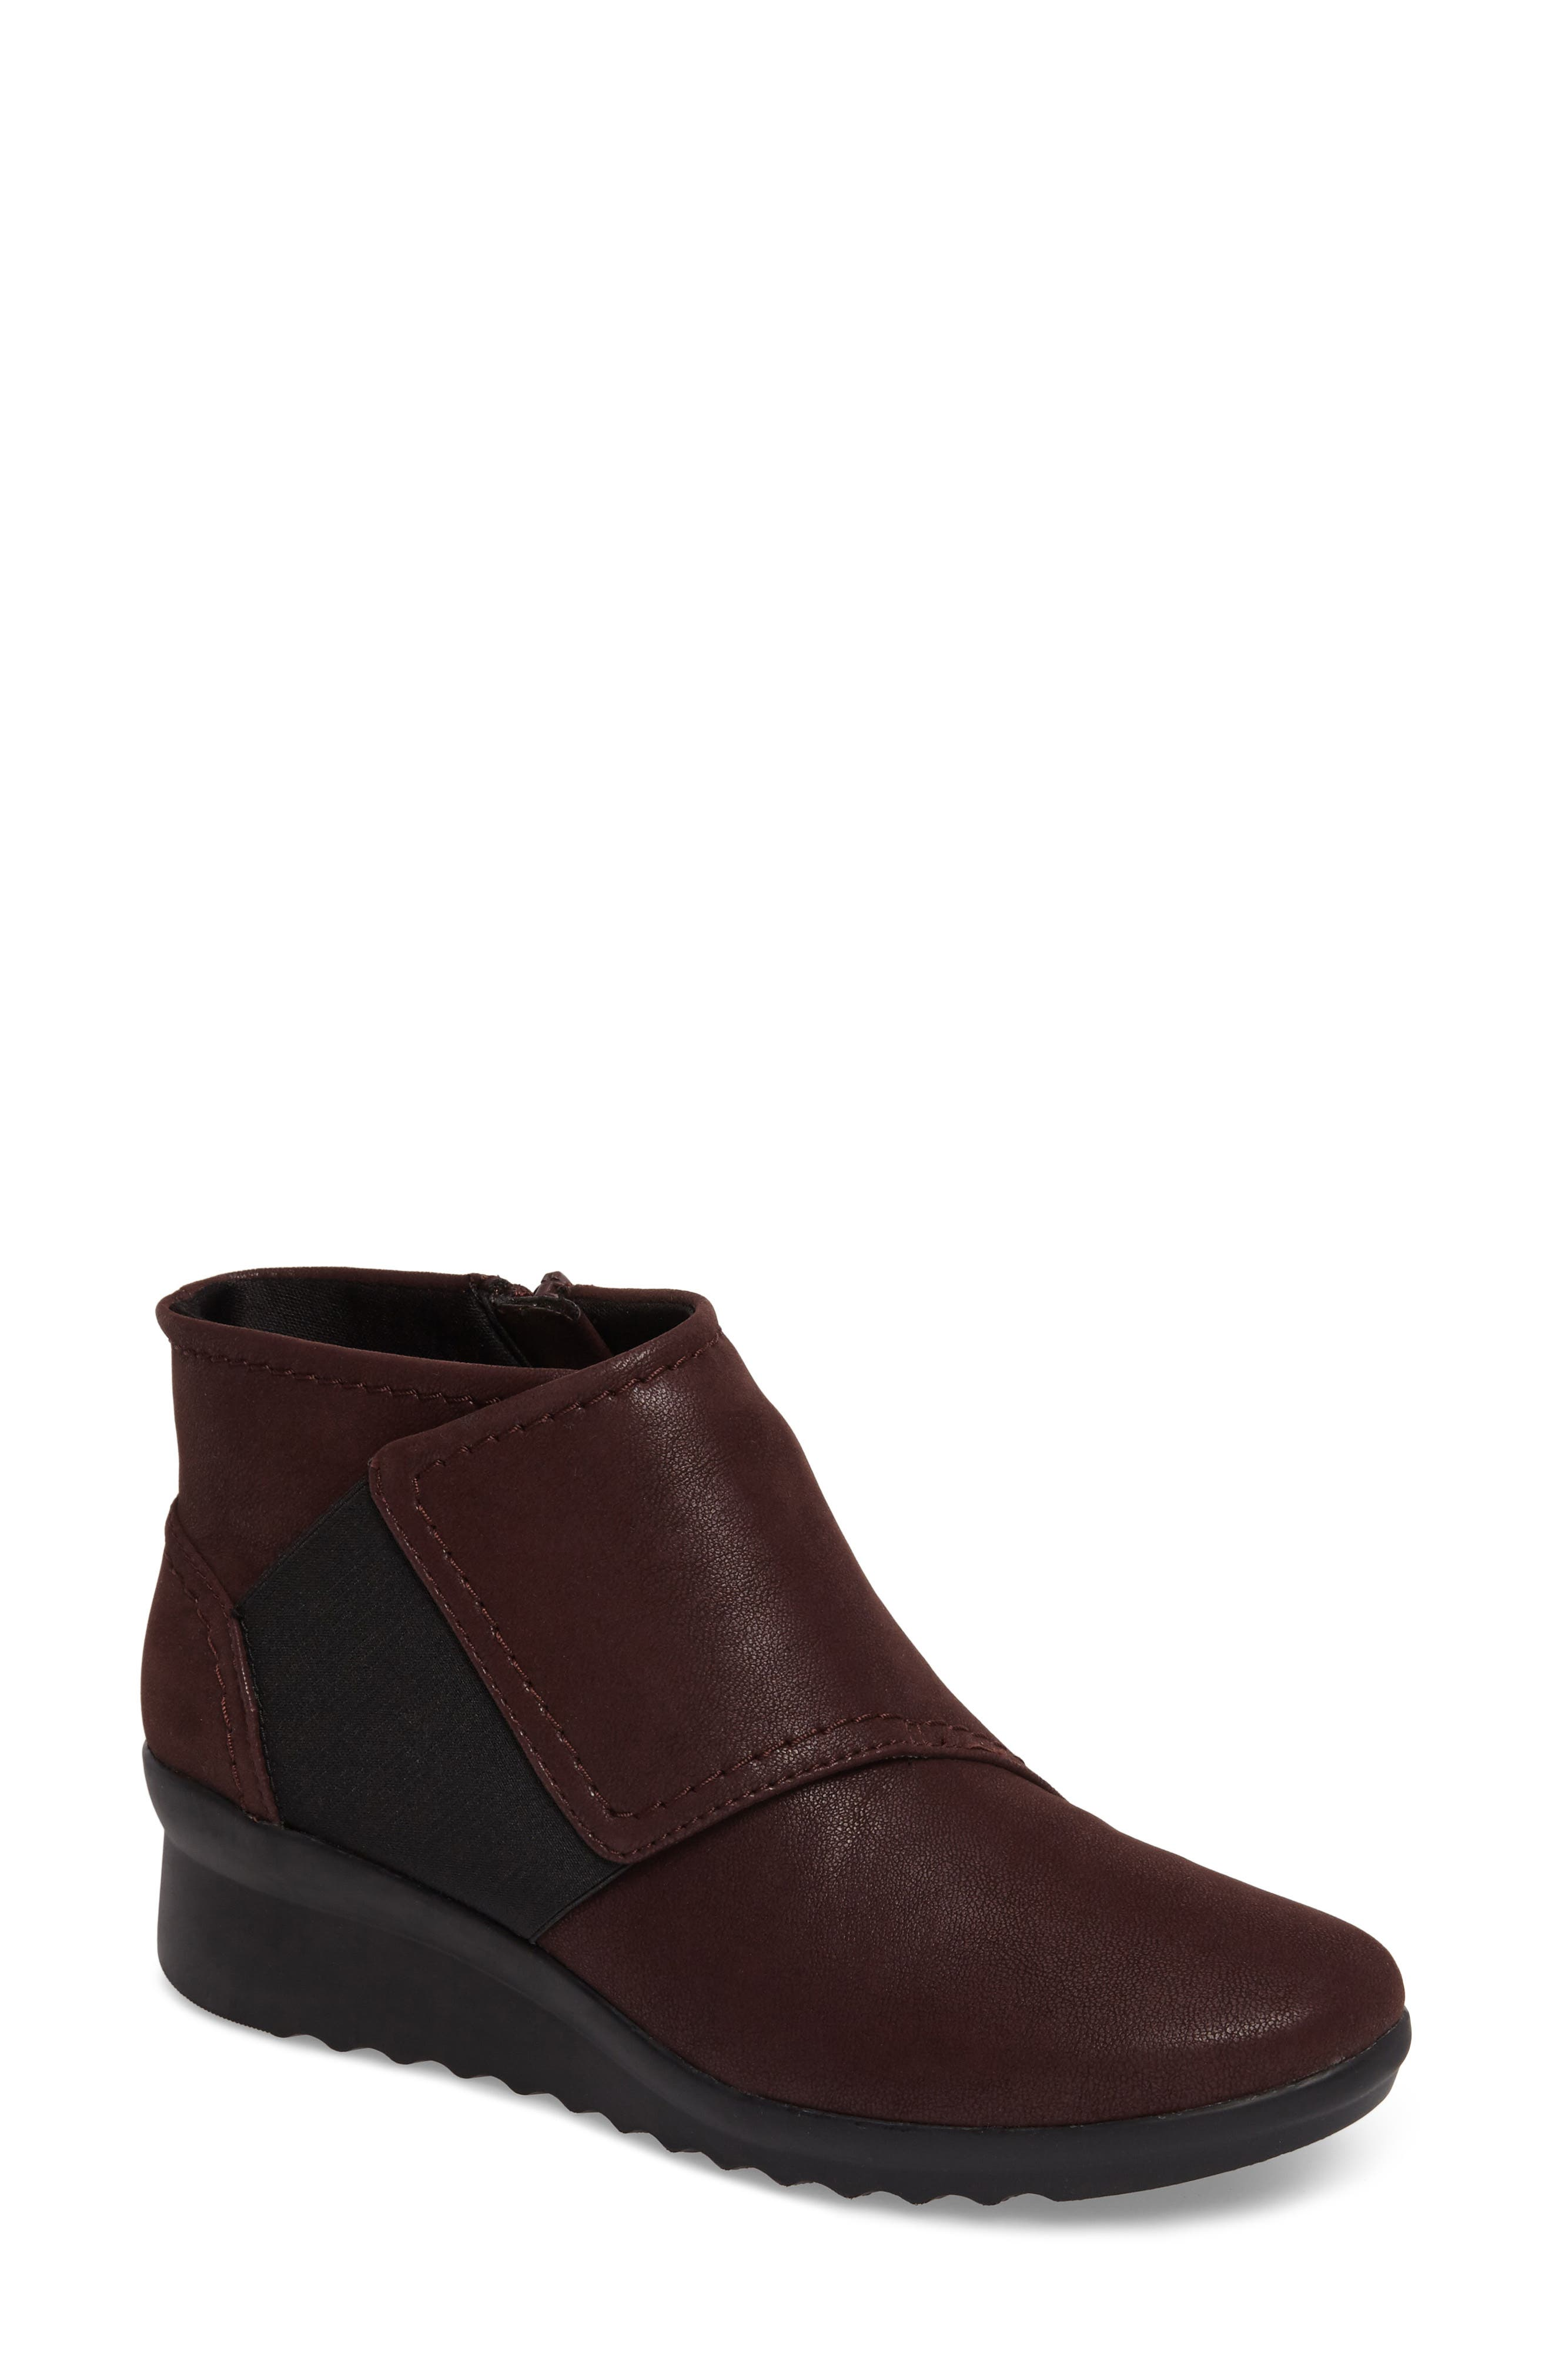 Caddell Rush Bootie,                         Main,                         color, Burgundy Leather